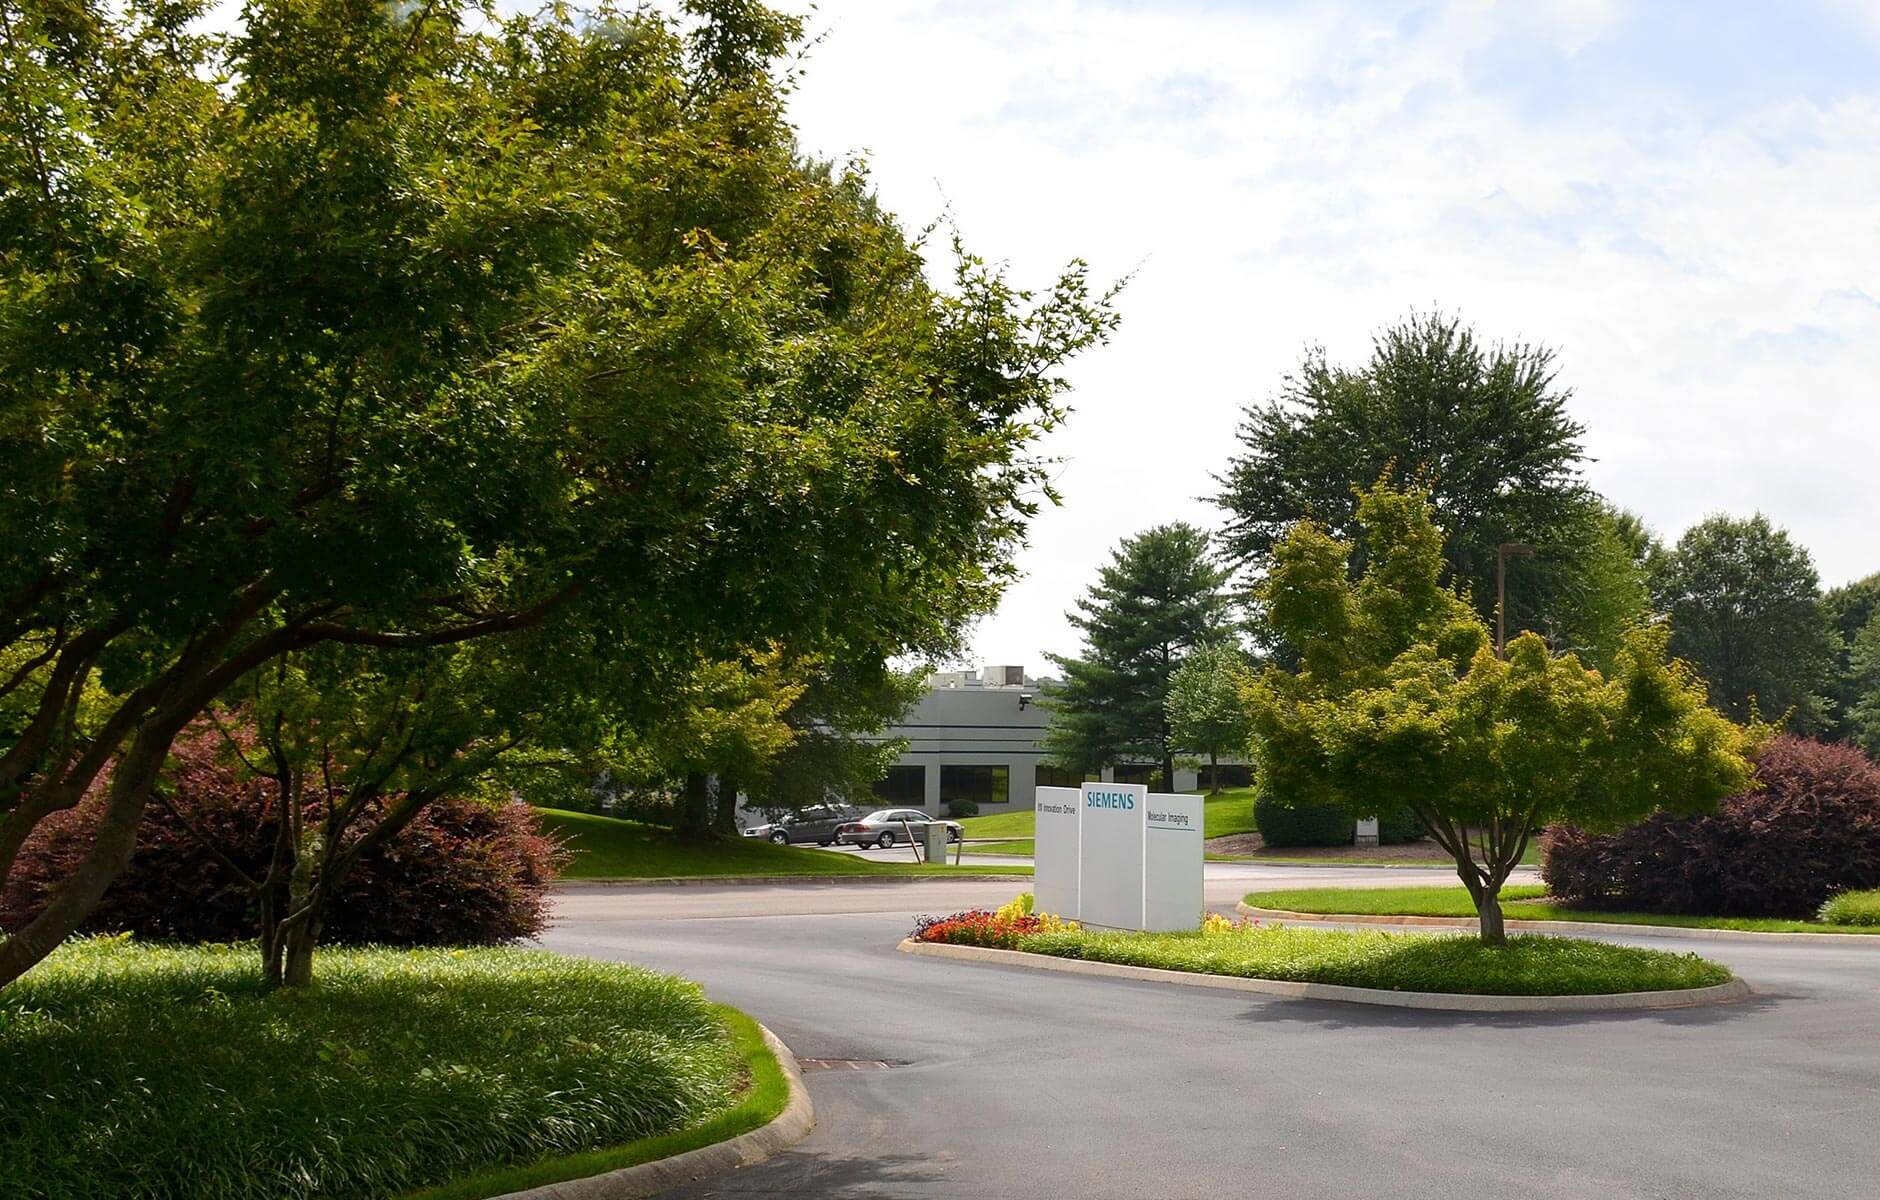 Industrial property with large flower and tree beds to enhance the view